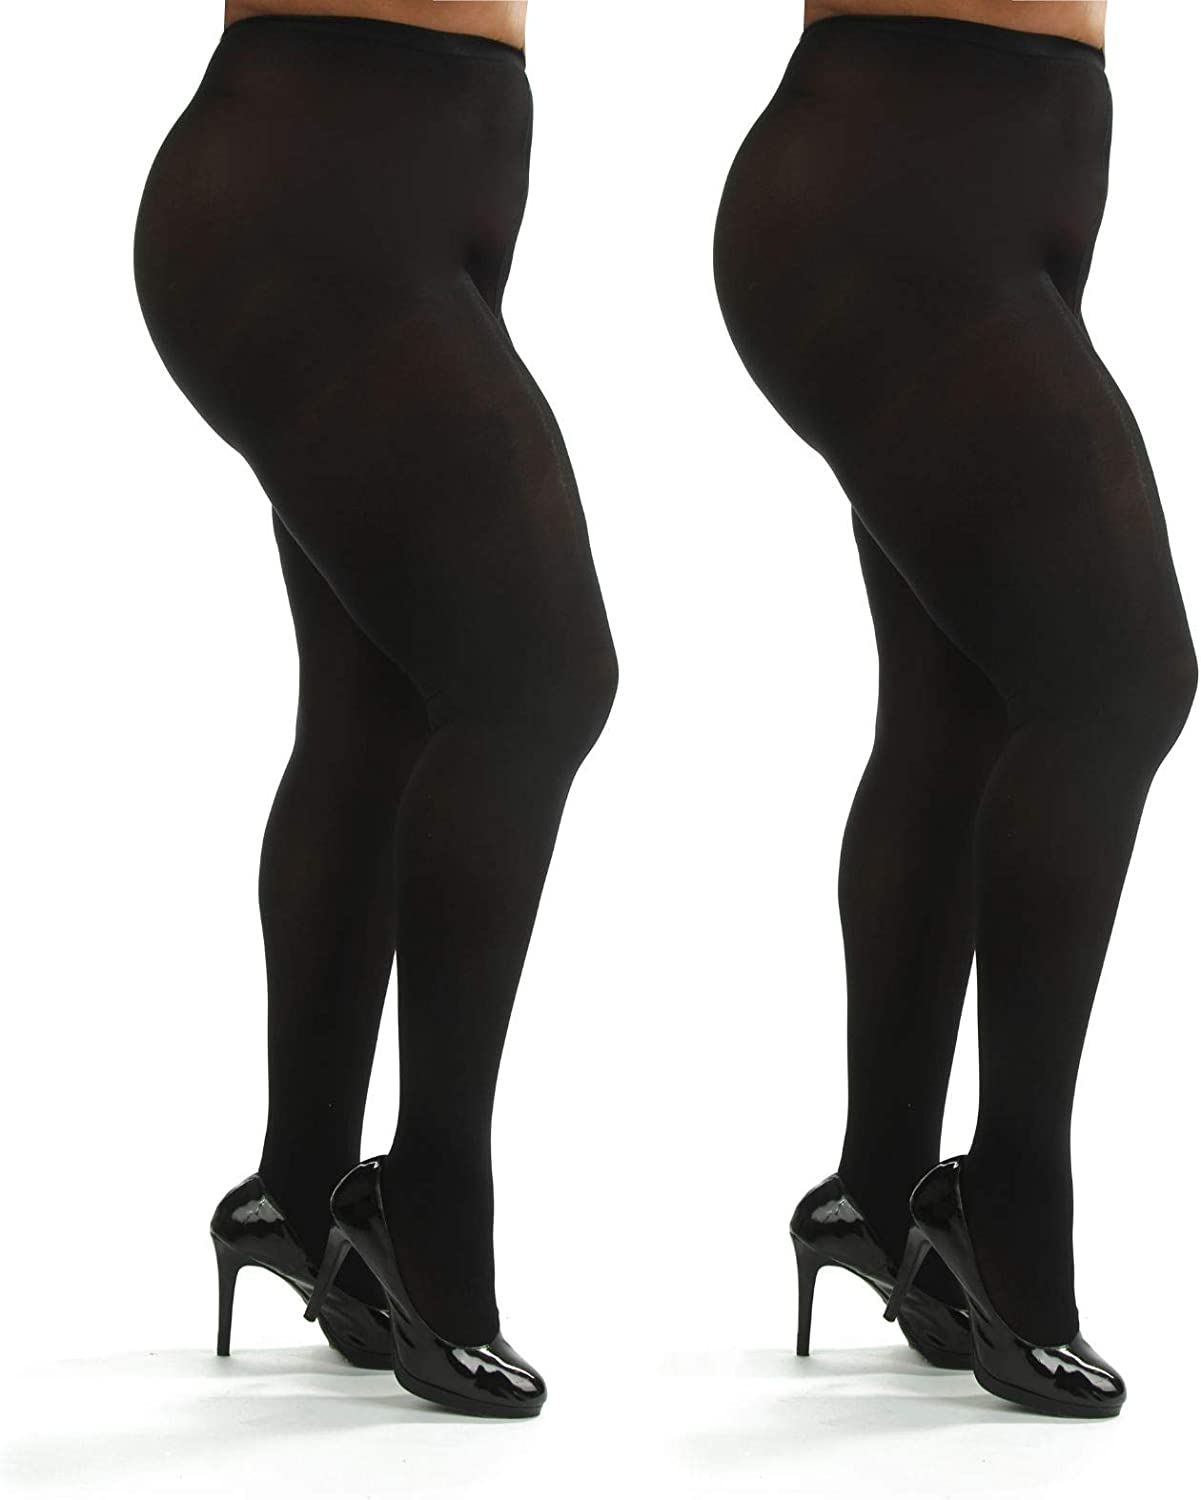 Silky Toes Women's Plus Size Opaque Microfiber Tights- 1 or 2 Pairs, Solid Colored